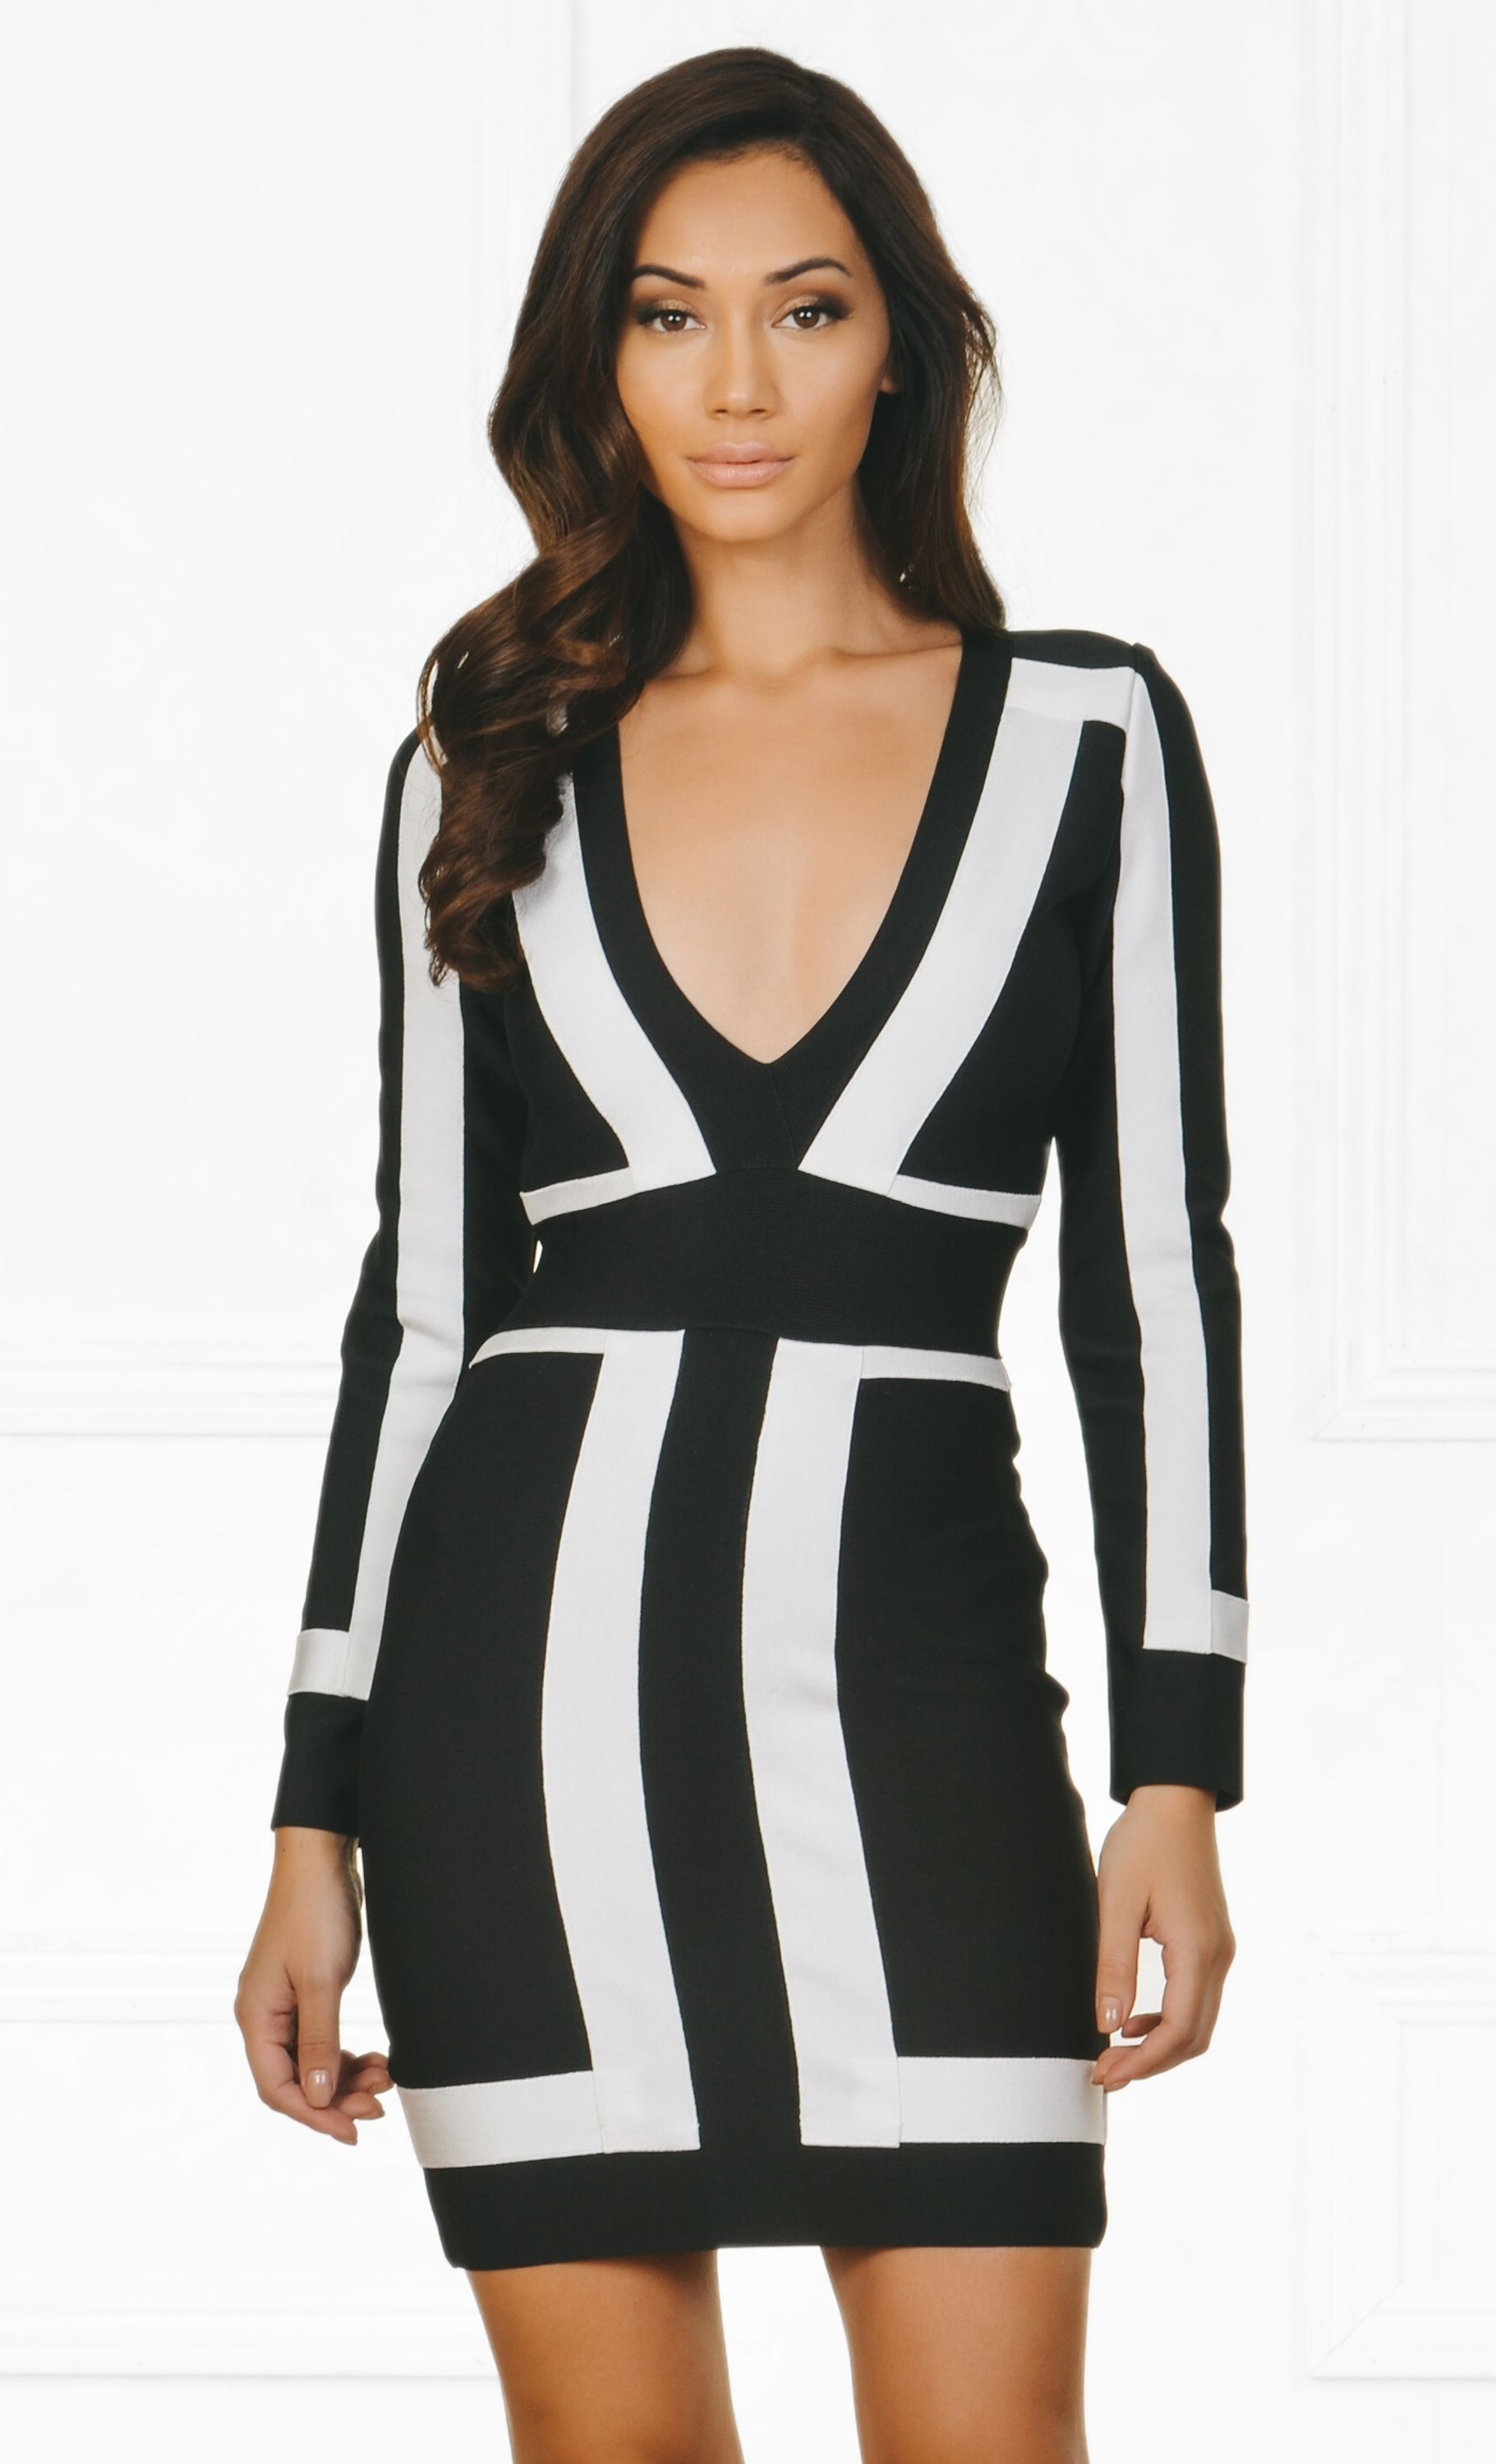 d38a2cf2dbe9 Indie XO Always On Time Black White Color Block Bandage Long Sleeve Plunge  V Neck Bodycon Mini Dress - As Seen on Amrezy